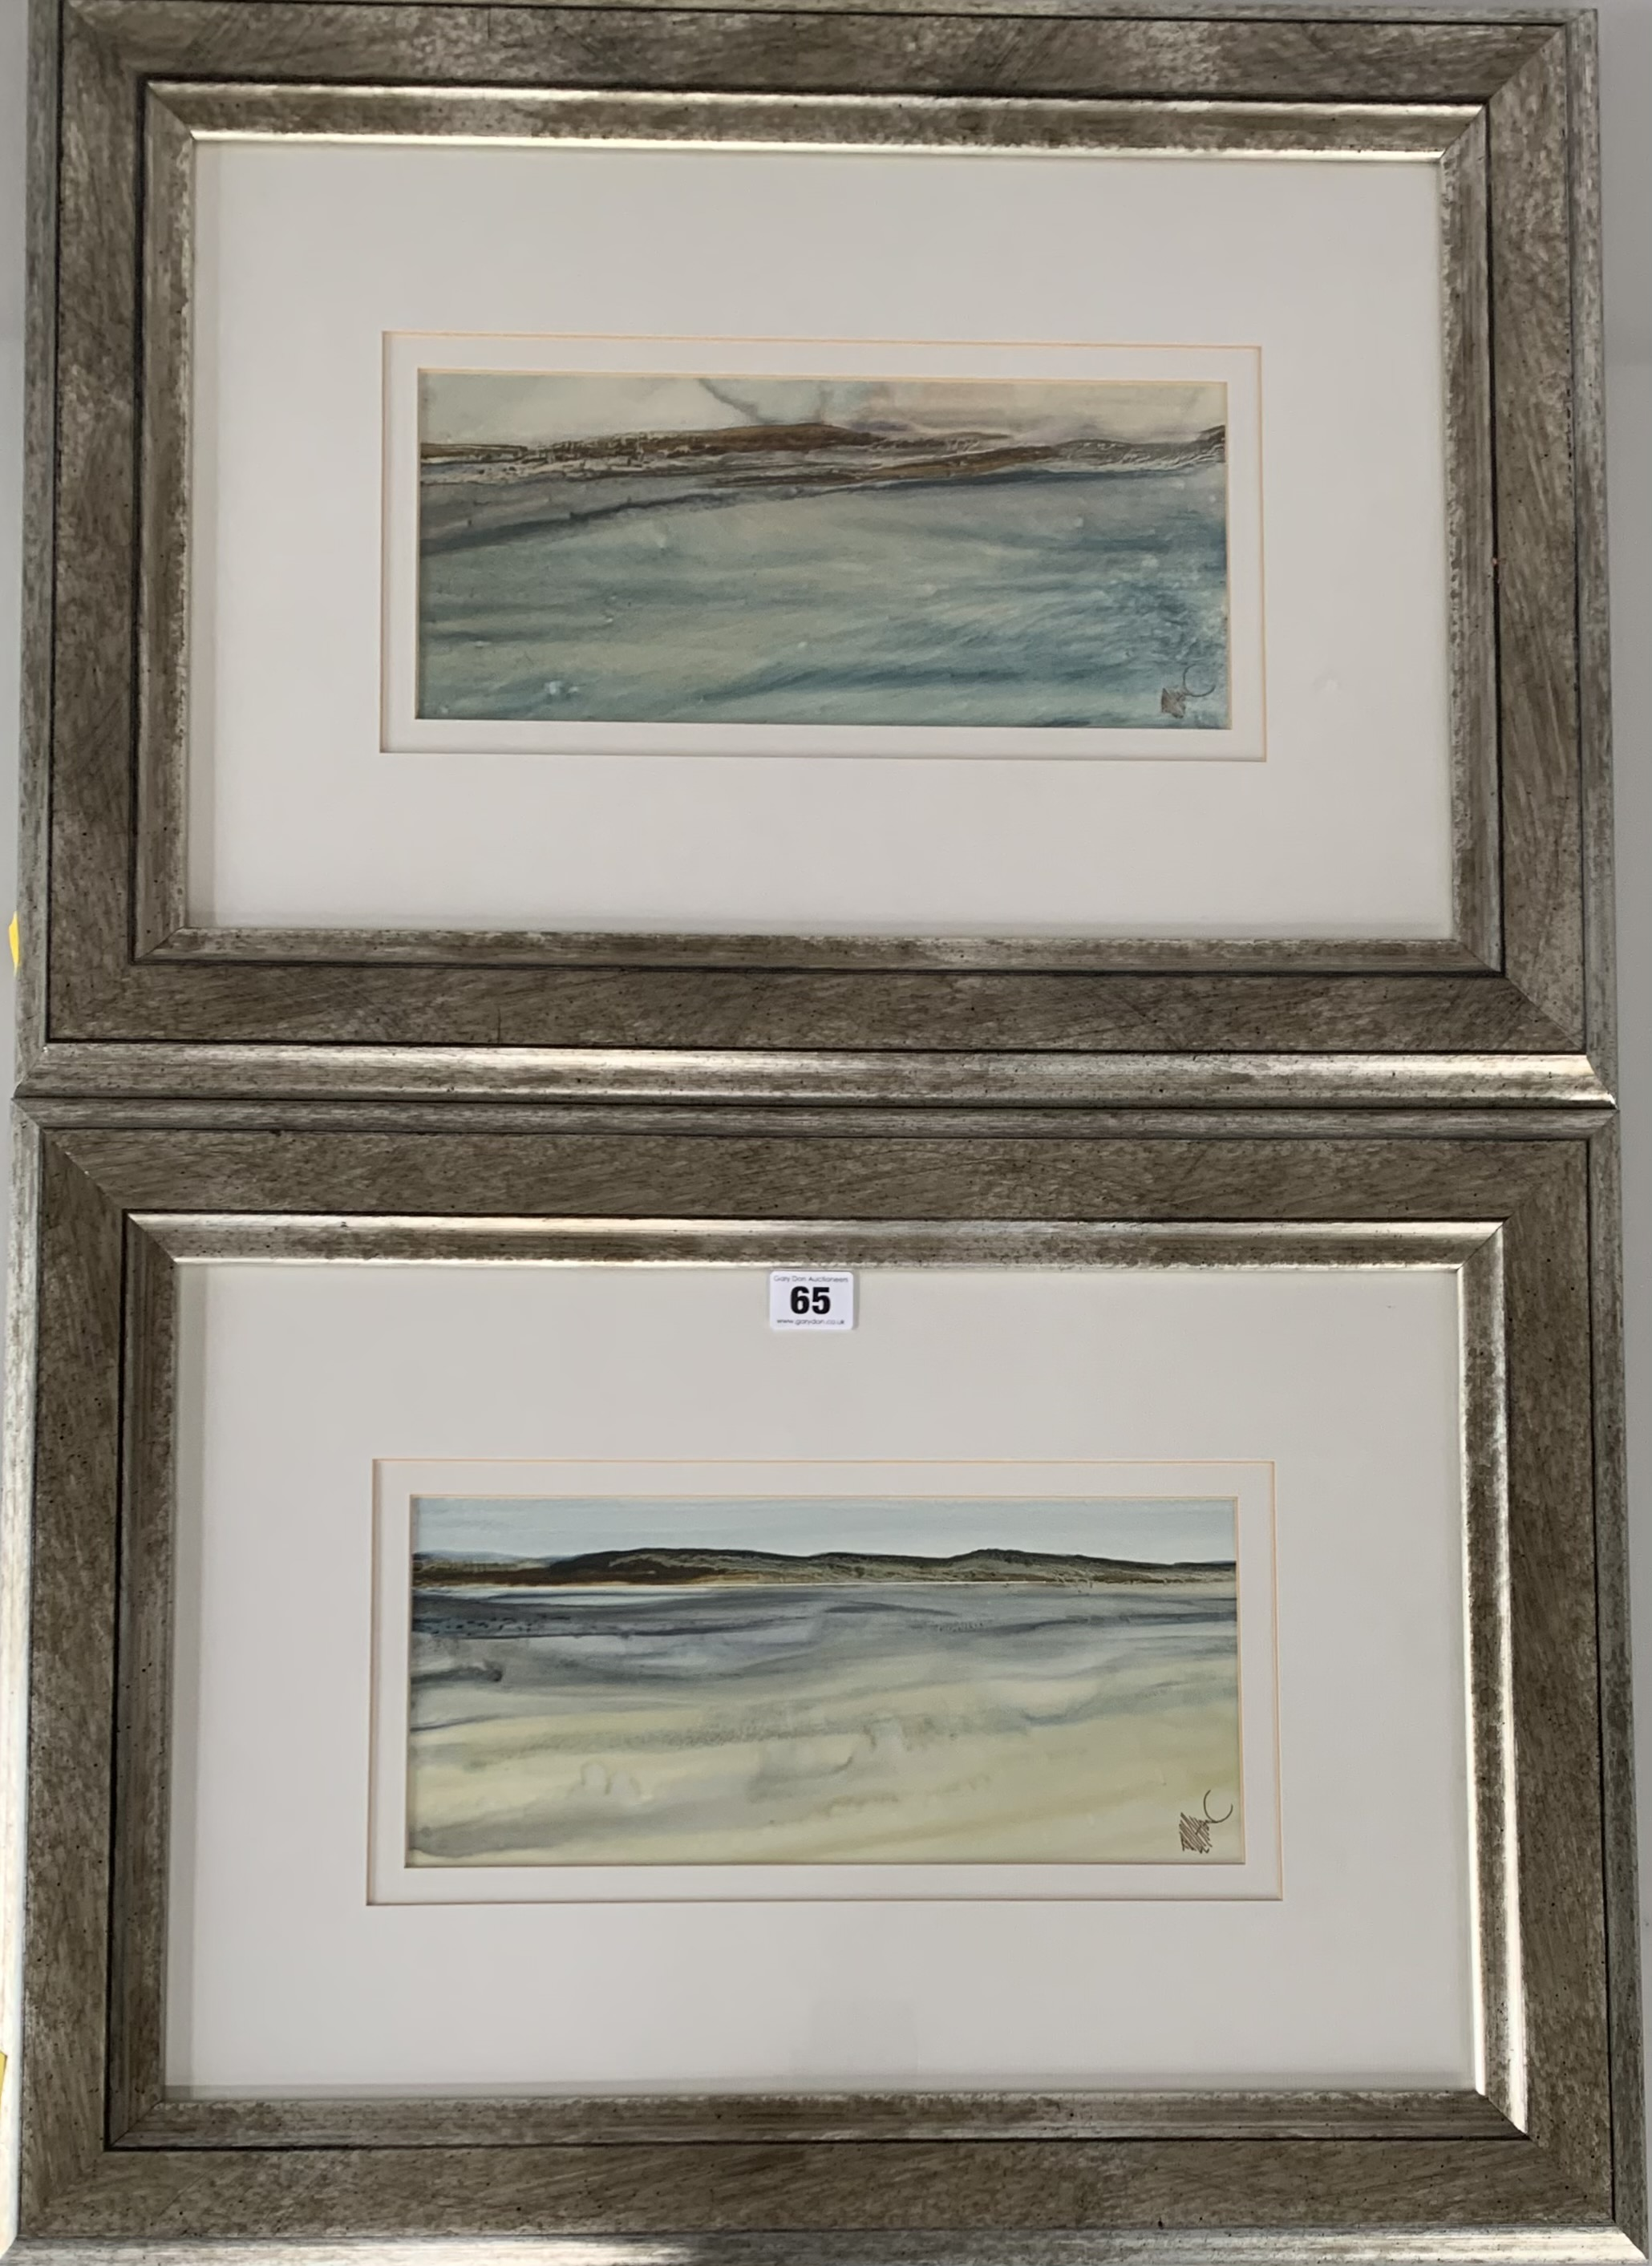 """Pair of watercolours """"Donegal Coast II"""" and """"Donegal Coast III"""" by Tony Holahan. Images 12"""" x 5."""